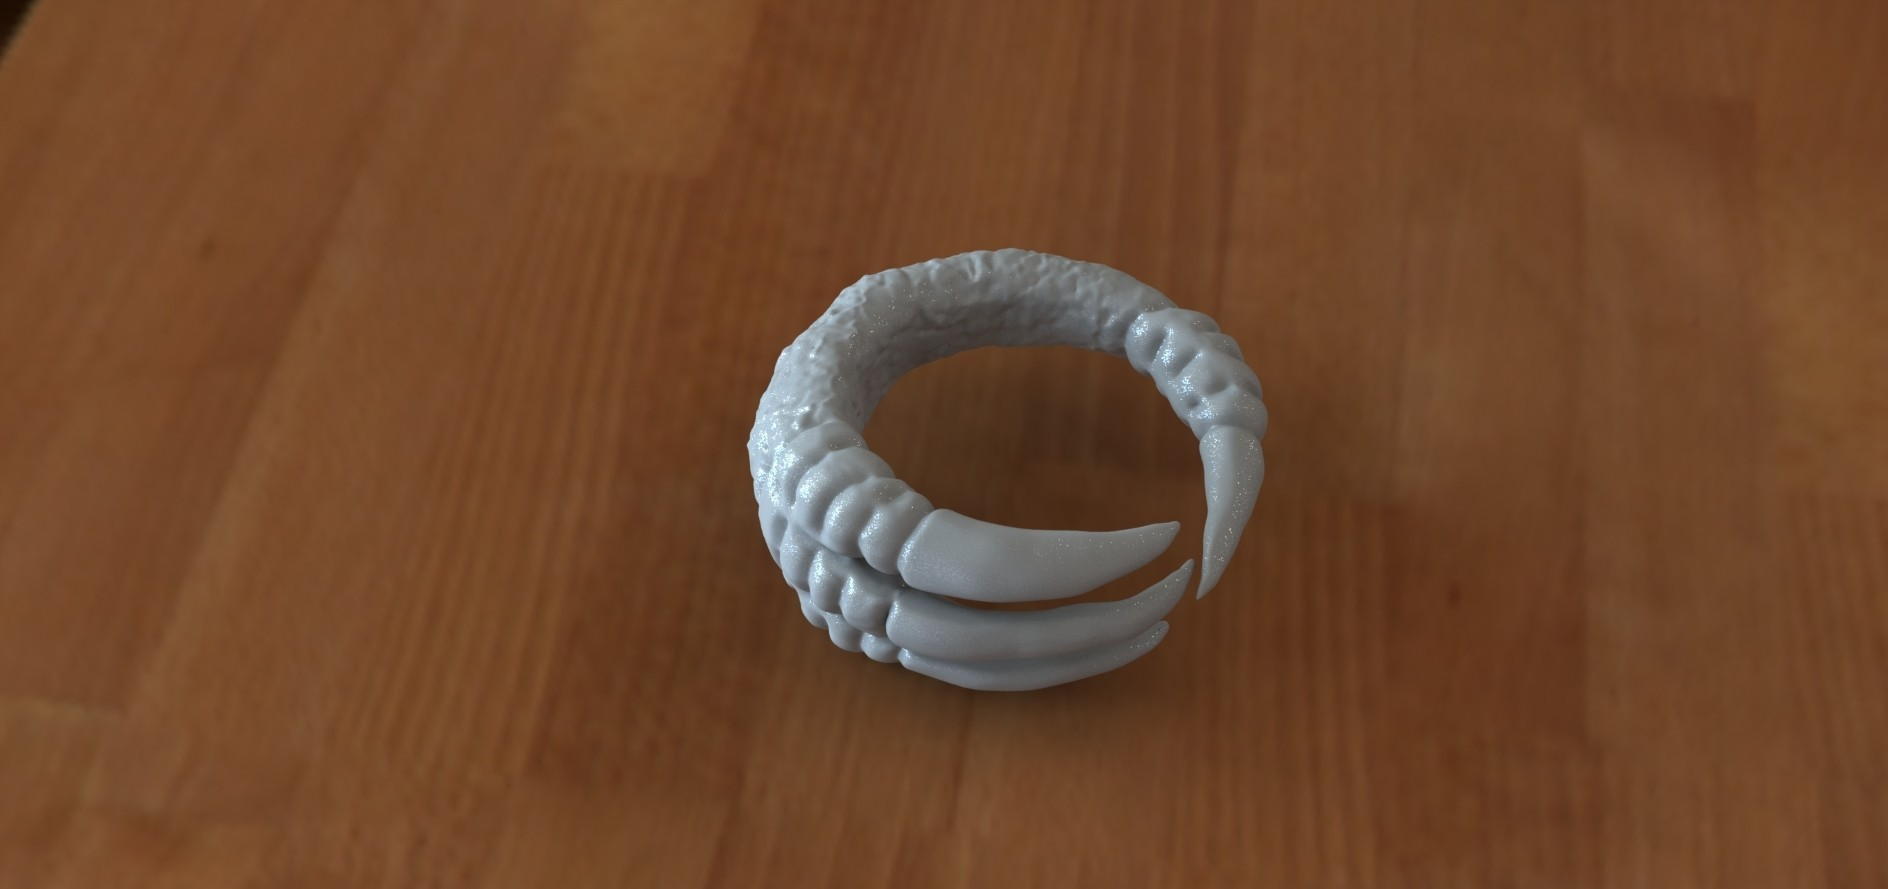 Claw ring 2.1.jpg Download STL file Claw ring • 3D print object, Majs84